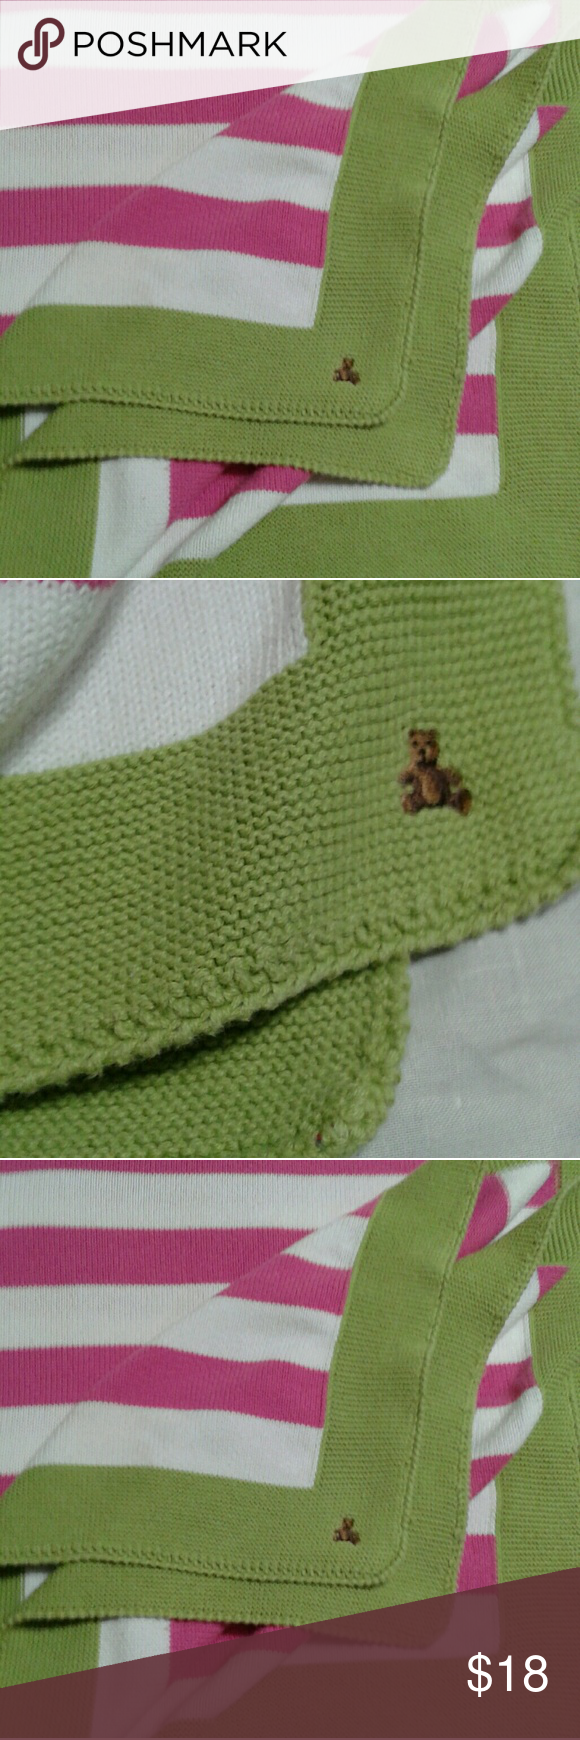 Knitted Baby blanket. Very lightly used Baby Gap blanket in raspberry pink, white, and lime green.  Care label is attached. Baby Gap Other